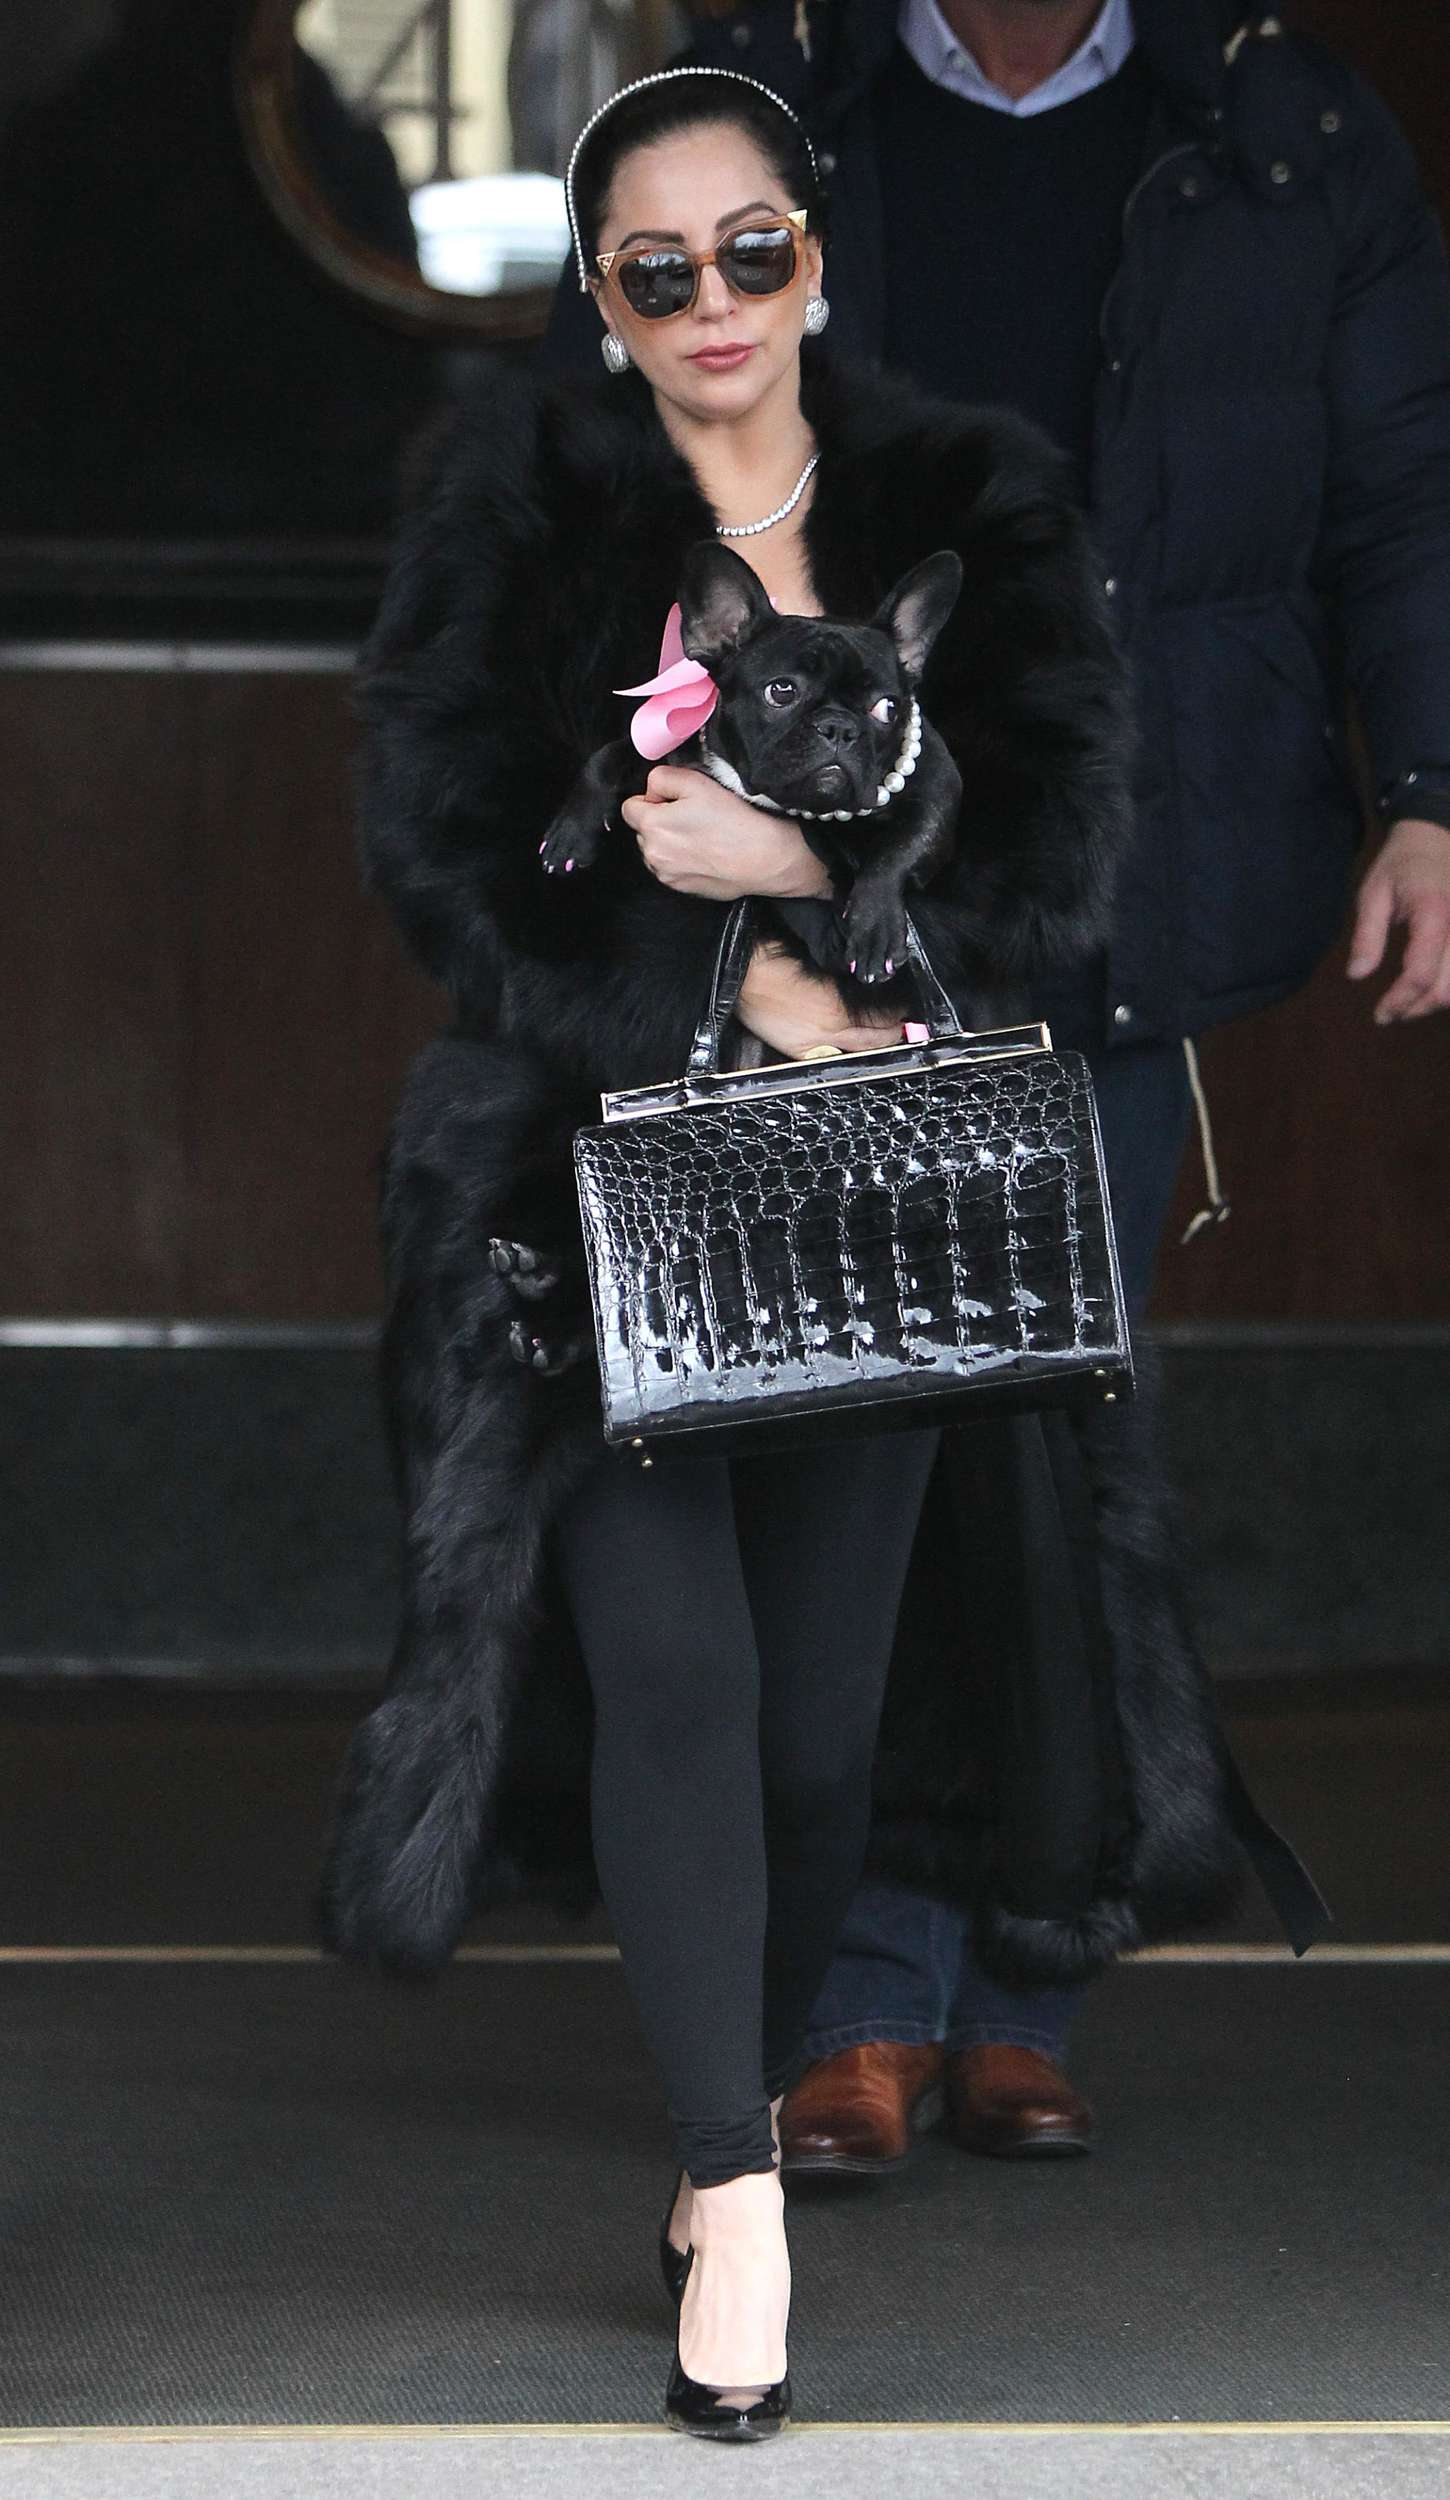 Lady Gaga With Her Dog Leaving her hotel in NY